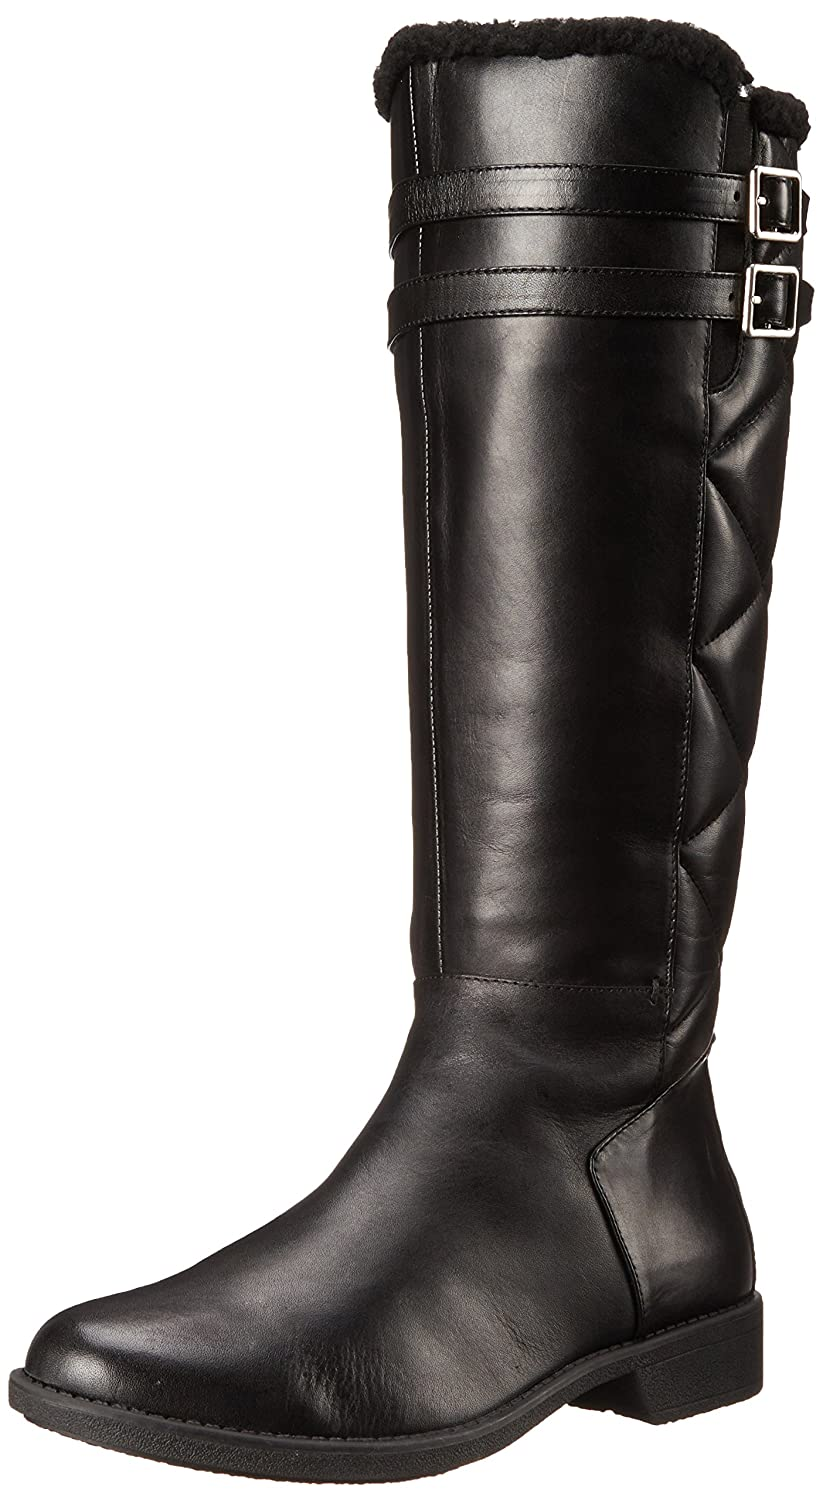 Taryn Rose Women's Arnie Rain Boot Taryn Rose Women's Arnie Black 6.5 M US